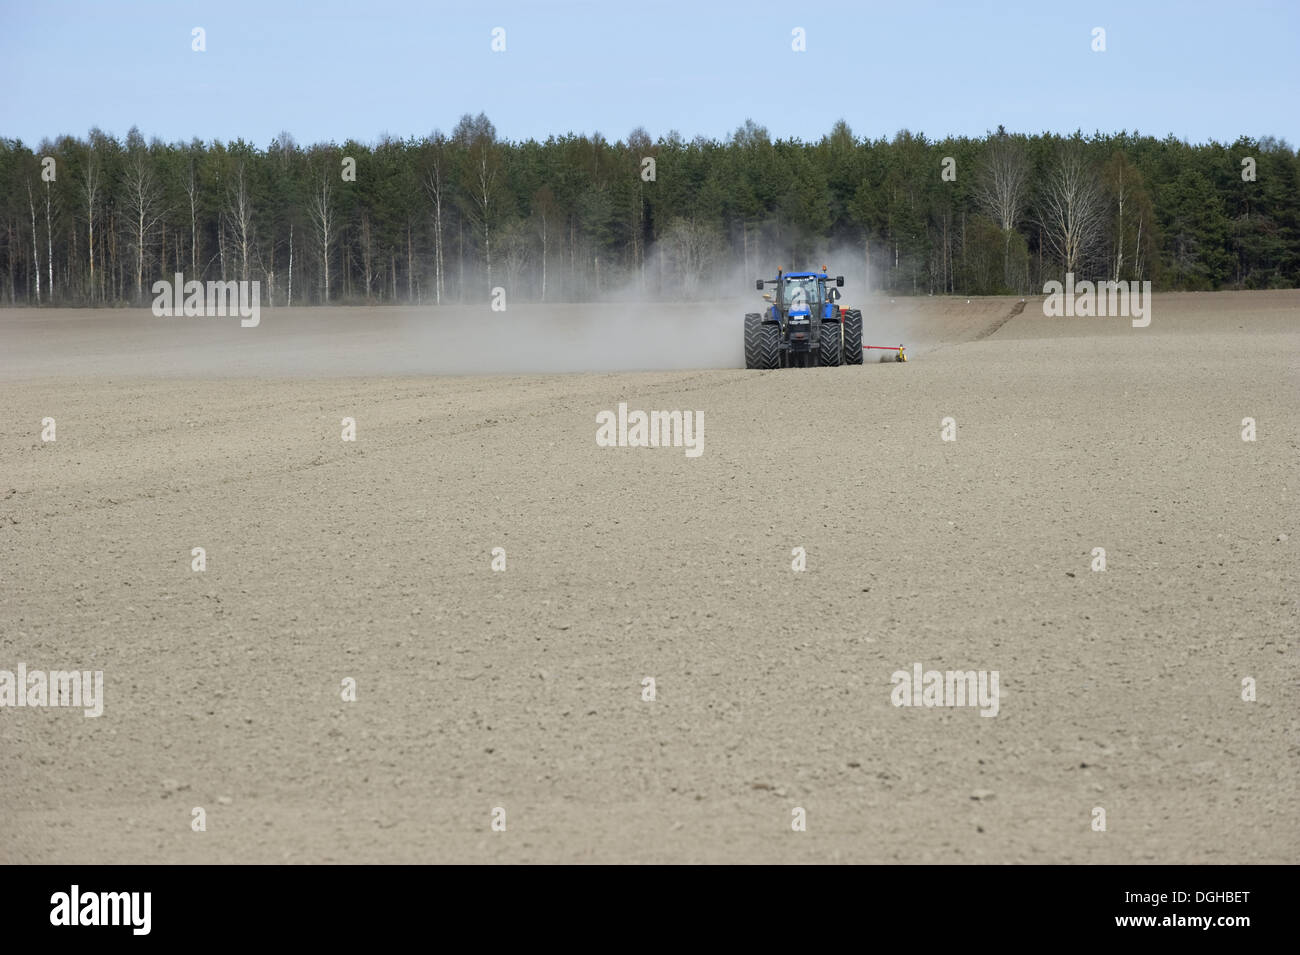 New Holland TM150 tractor, drilling in field with wind blown dust